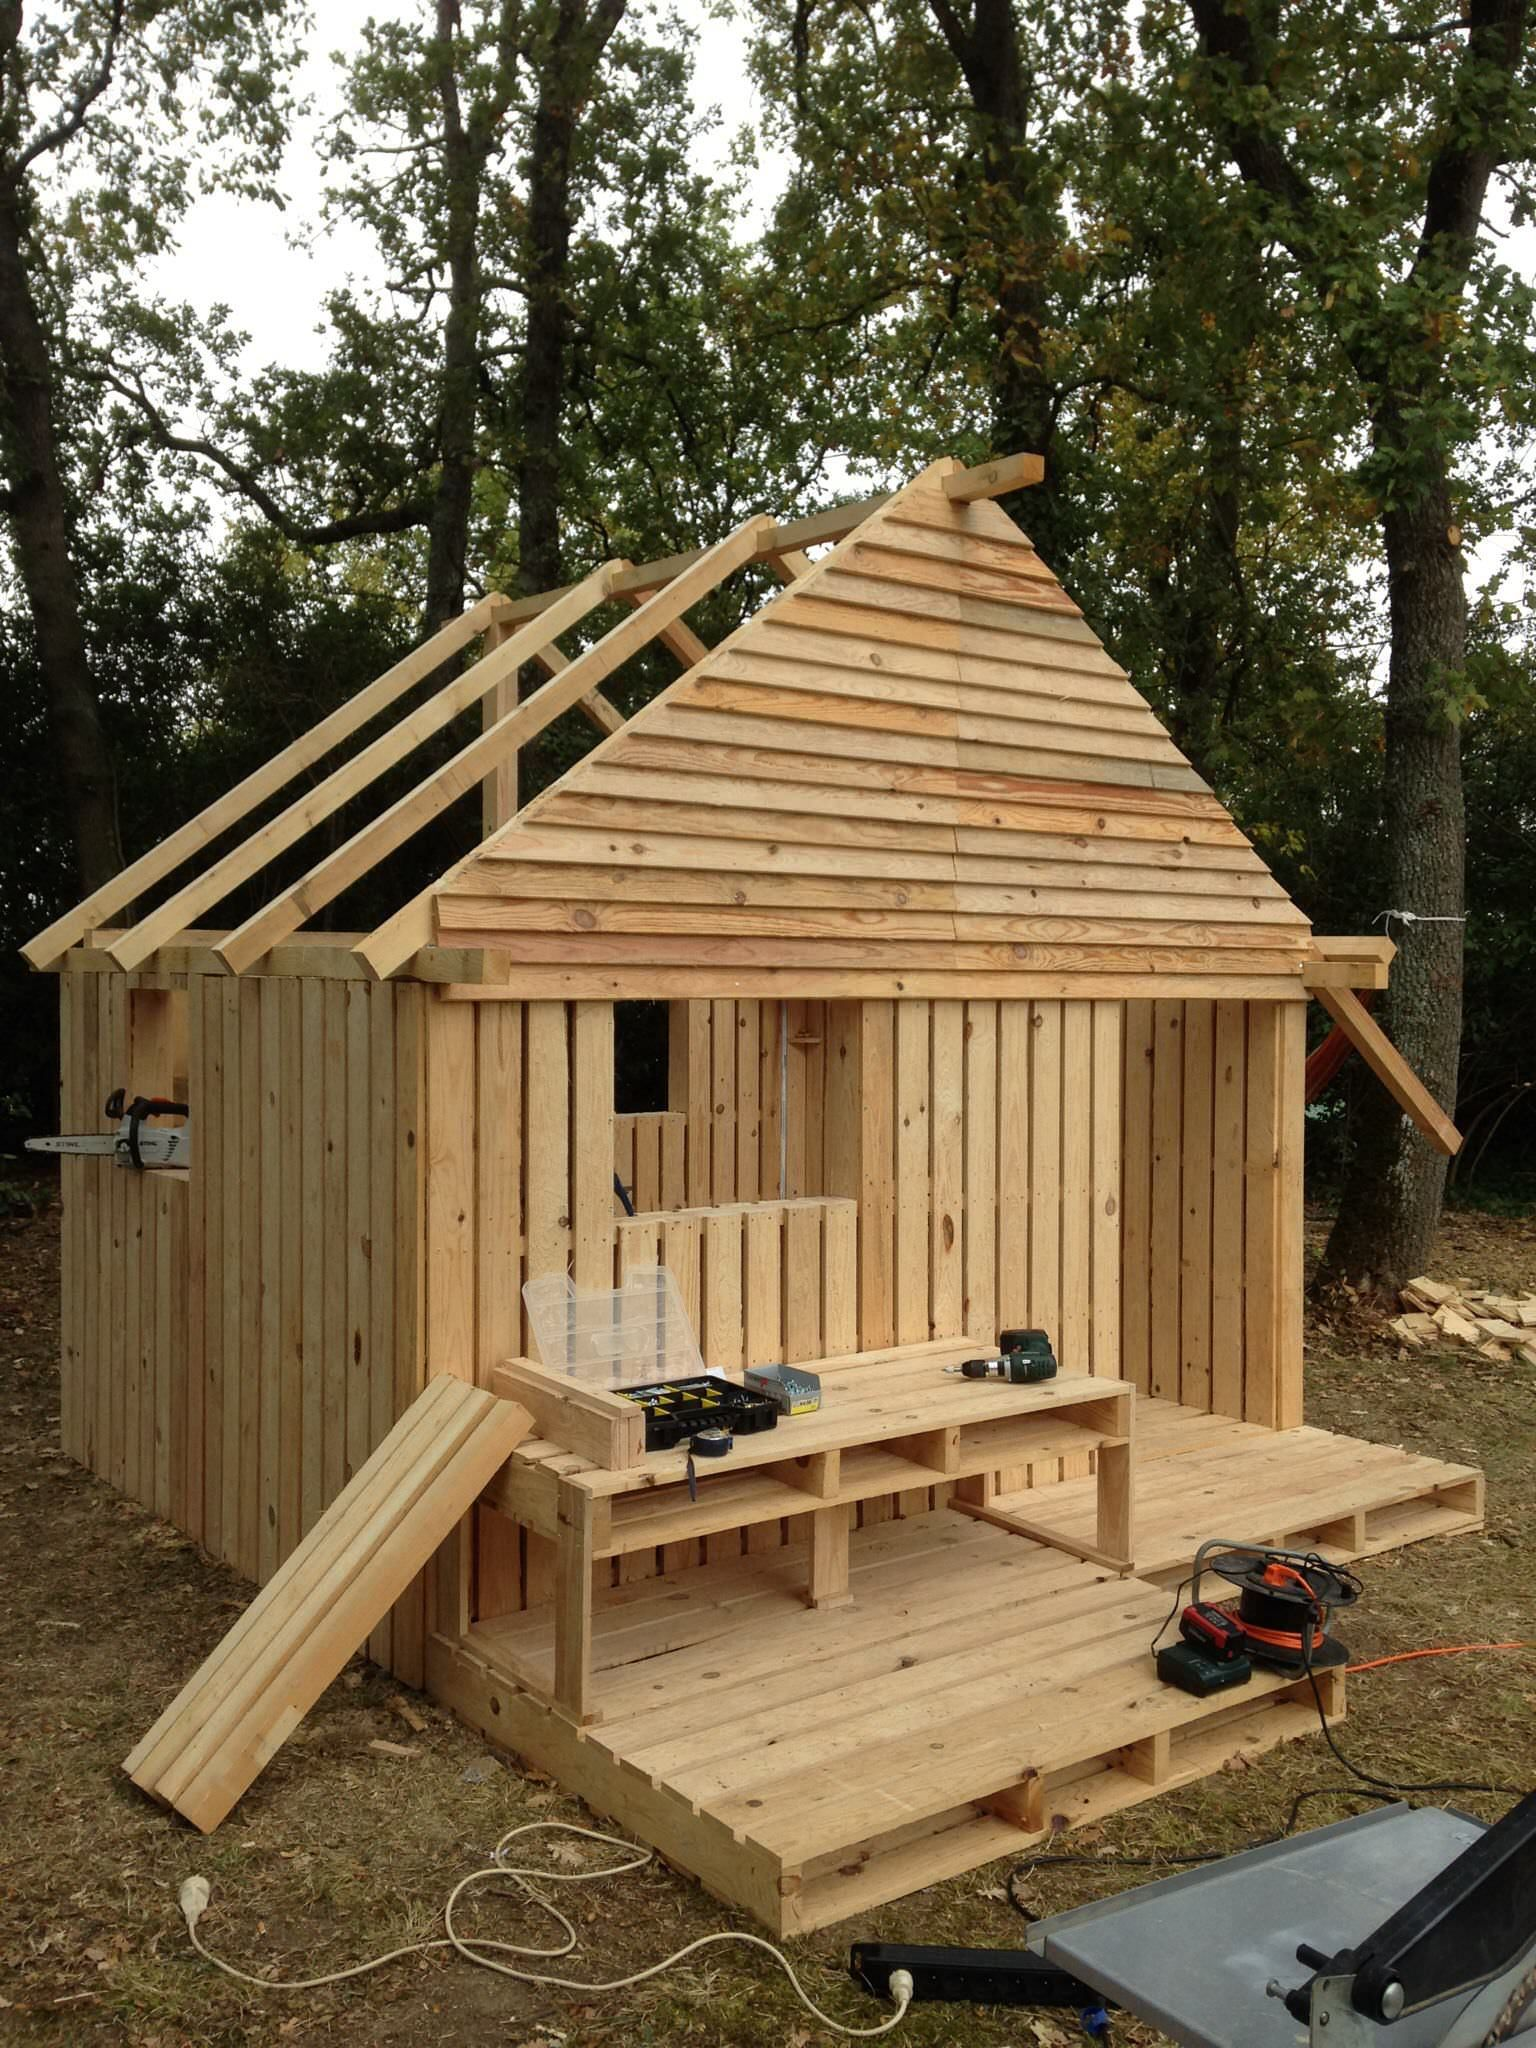 Teenager Cabin Made From 19 Wooden Pallets Kids Projects With Pallet Huts Cabins Playhouses